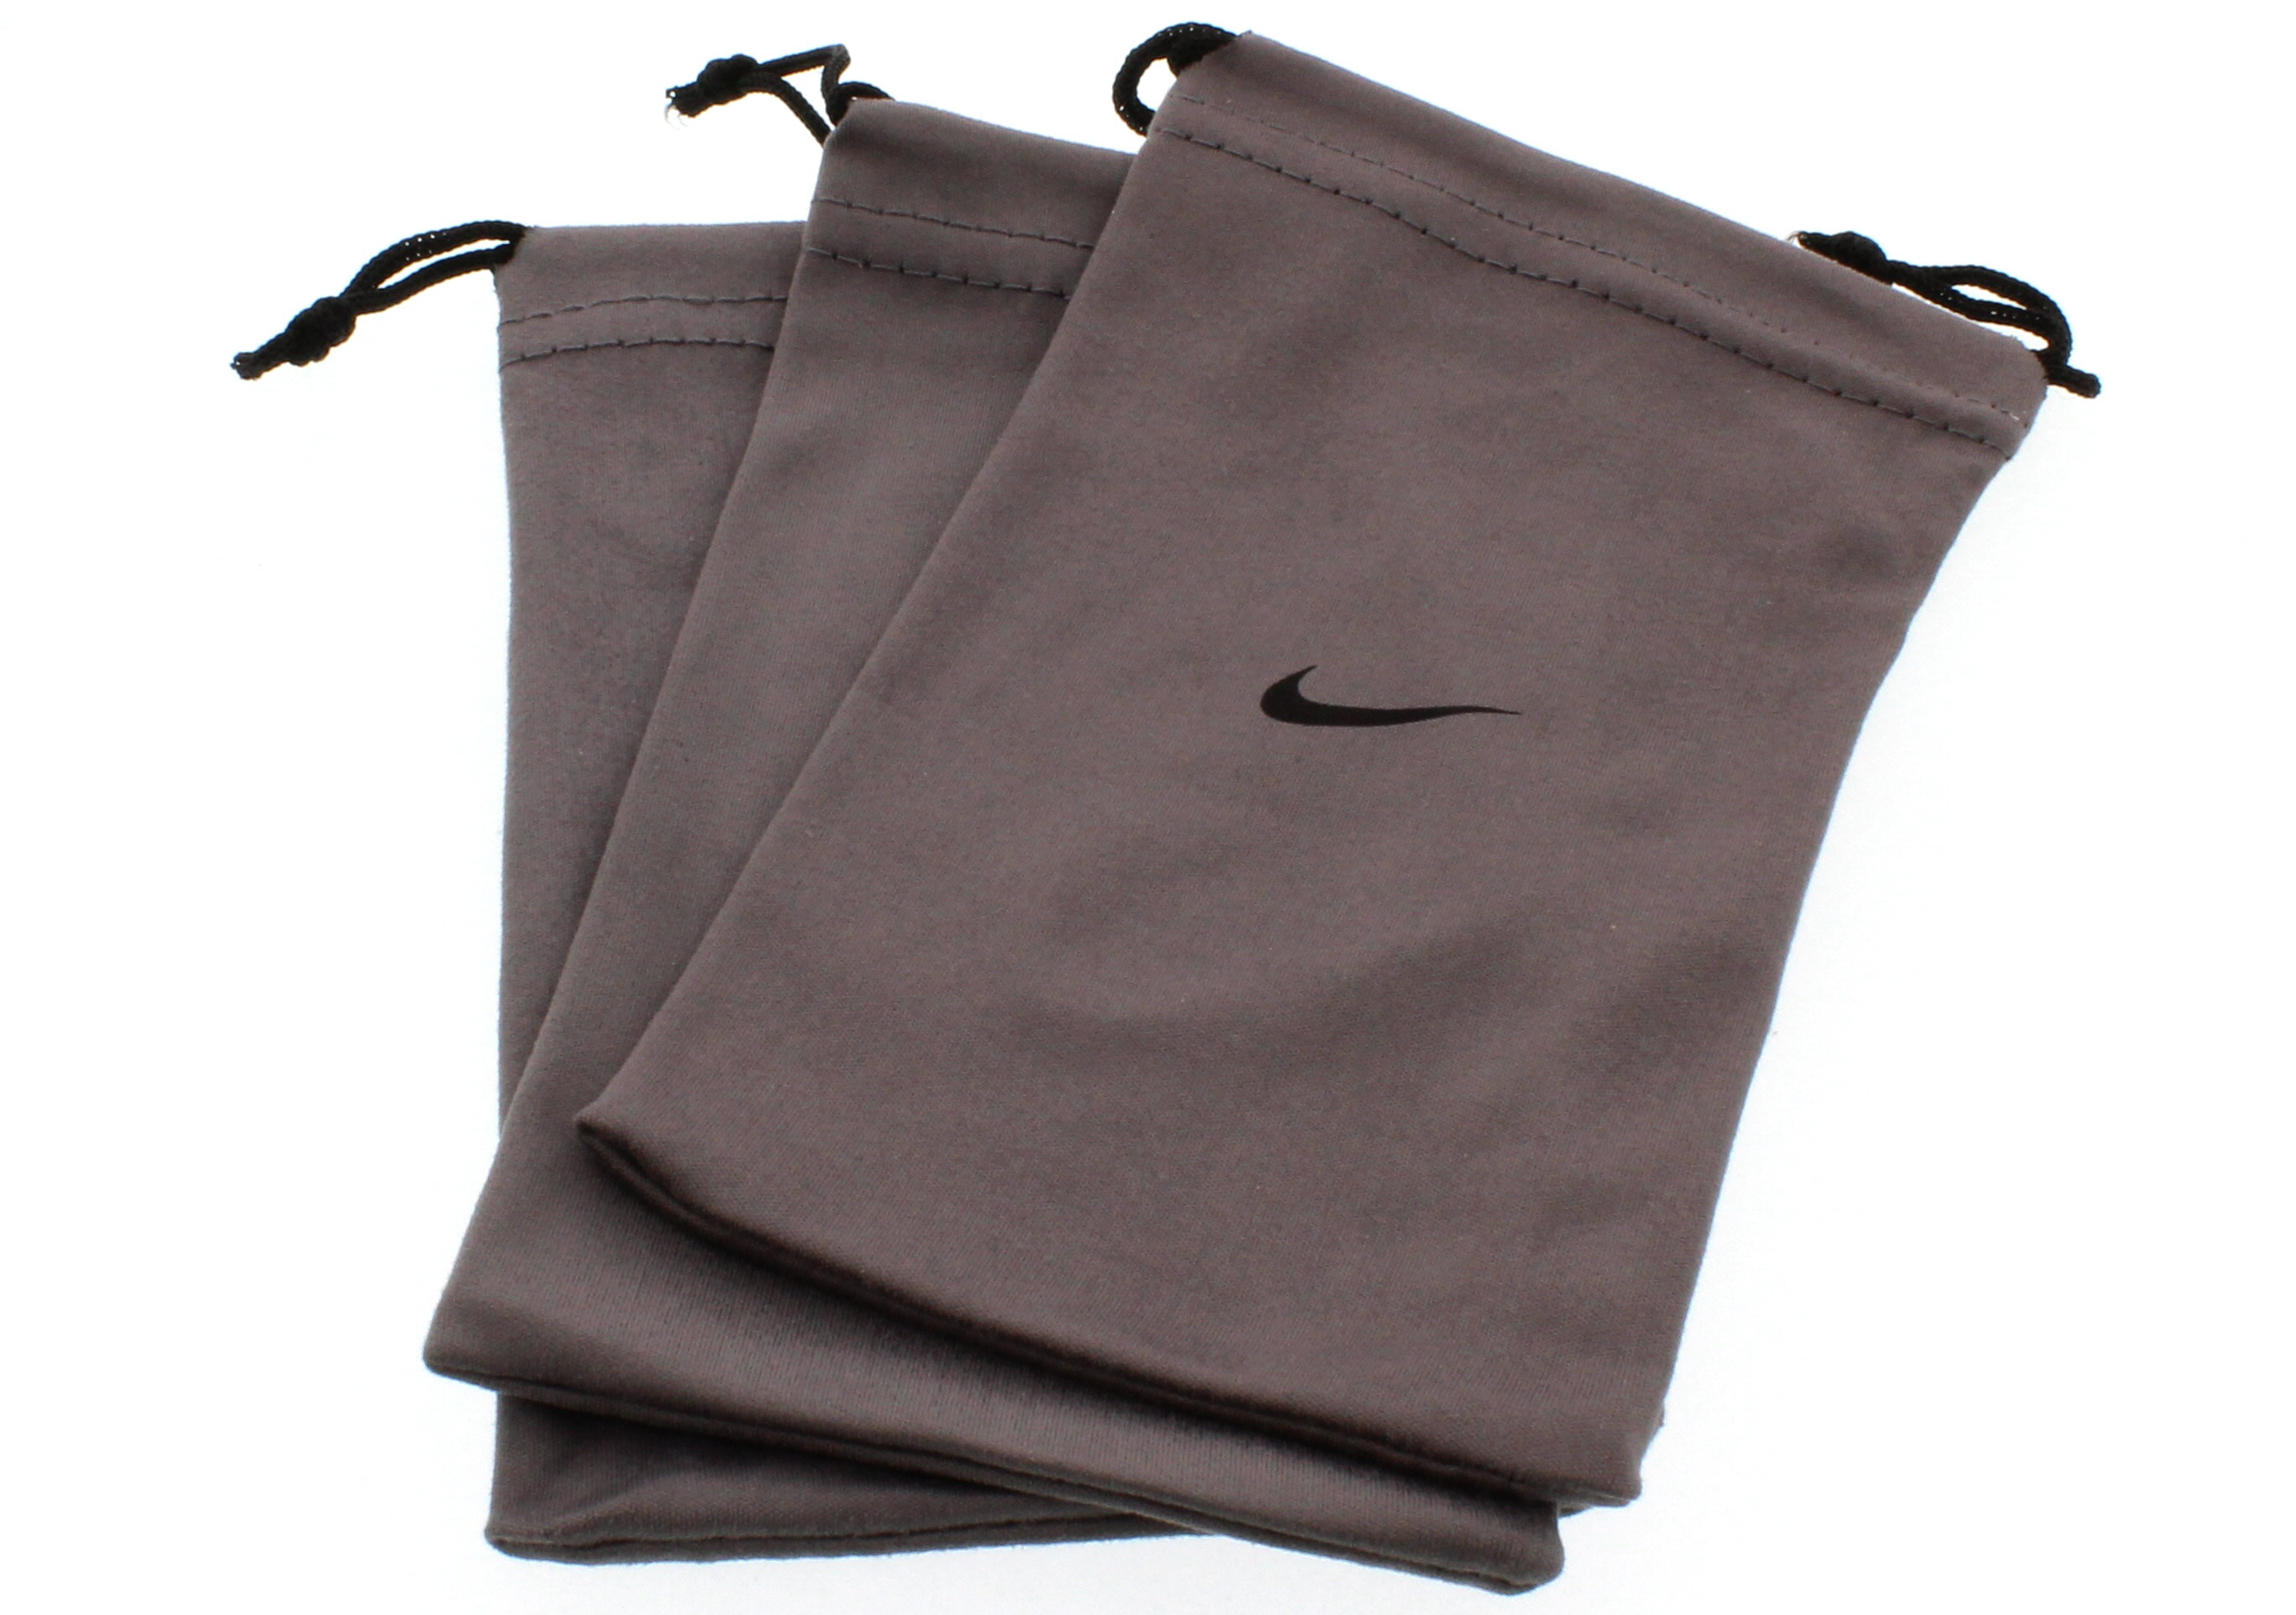 756f8d60e831 Image is loading NIKE-Drawstring-Pouch-NIKE-SUN-BAG-POUCH-Grey